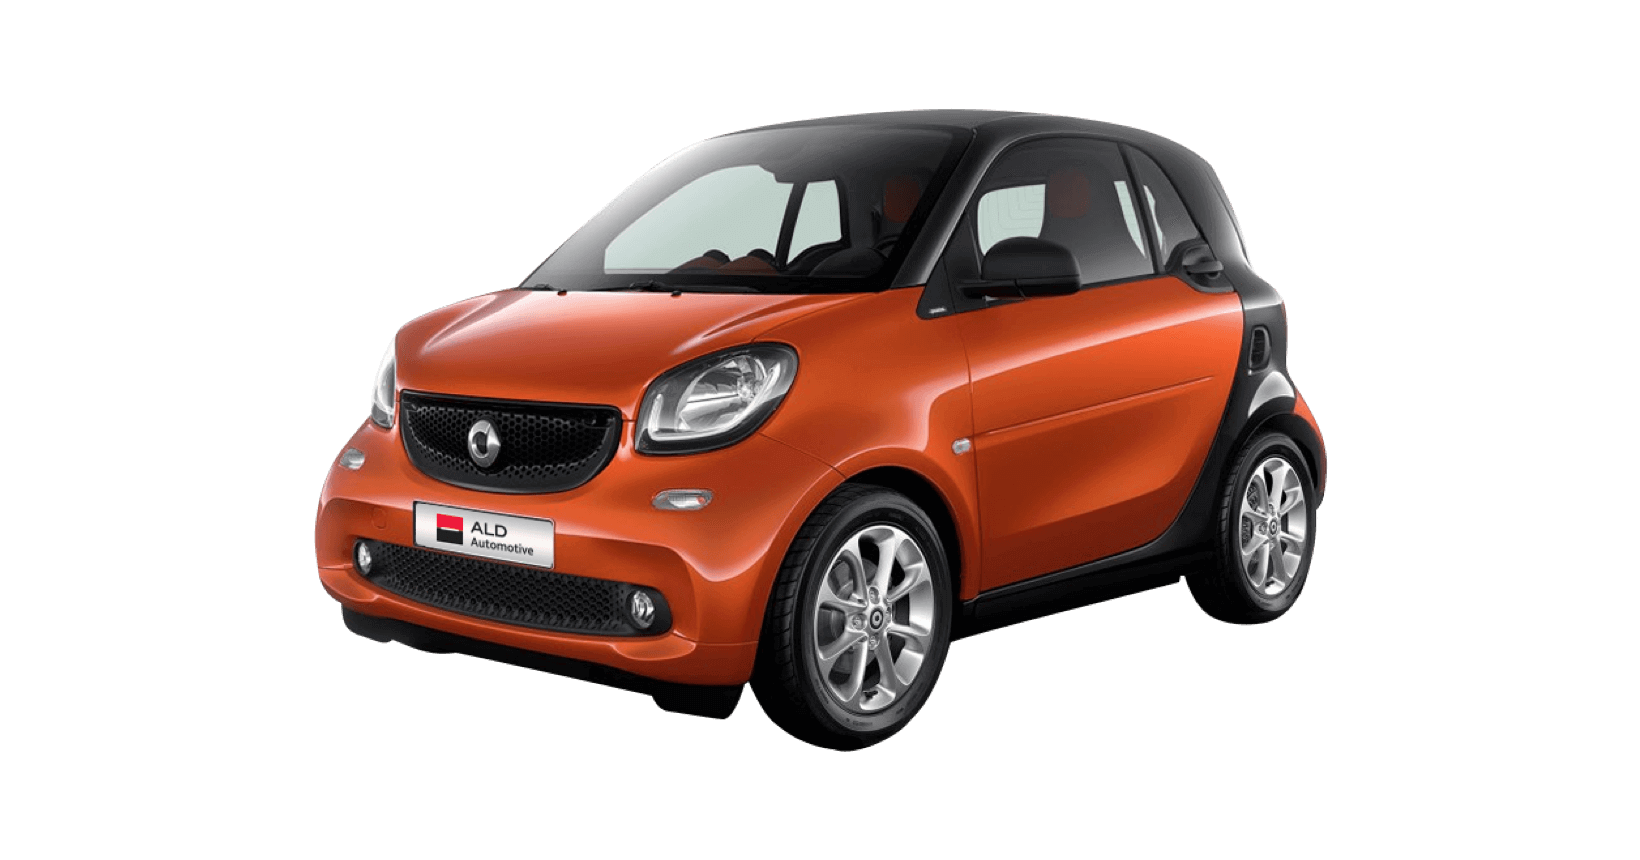 SMART FORTWO COUPÈ 70 1.0 52kW passion twinamic Coupé 3-door